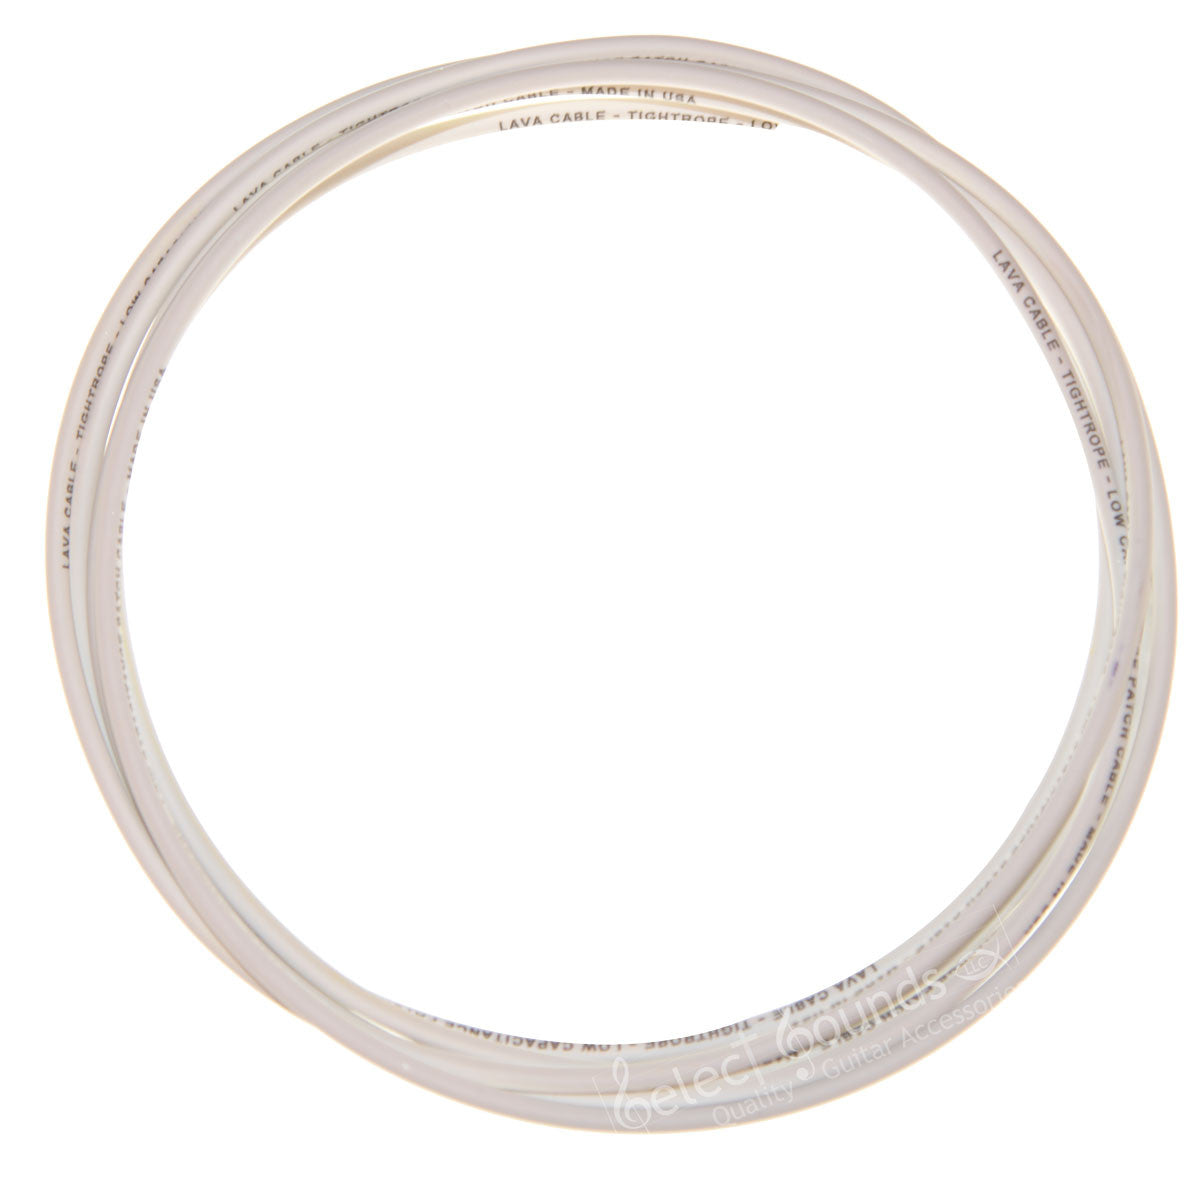 Lava Cable White Tightrope Cable, Sold By The Foot, For Tightrope Plugs